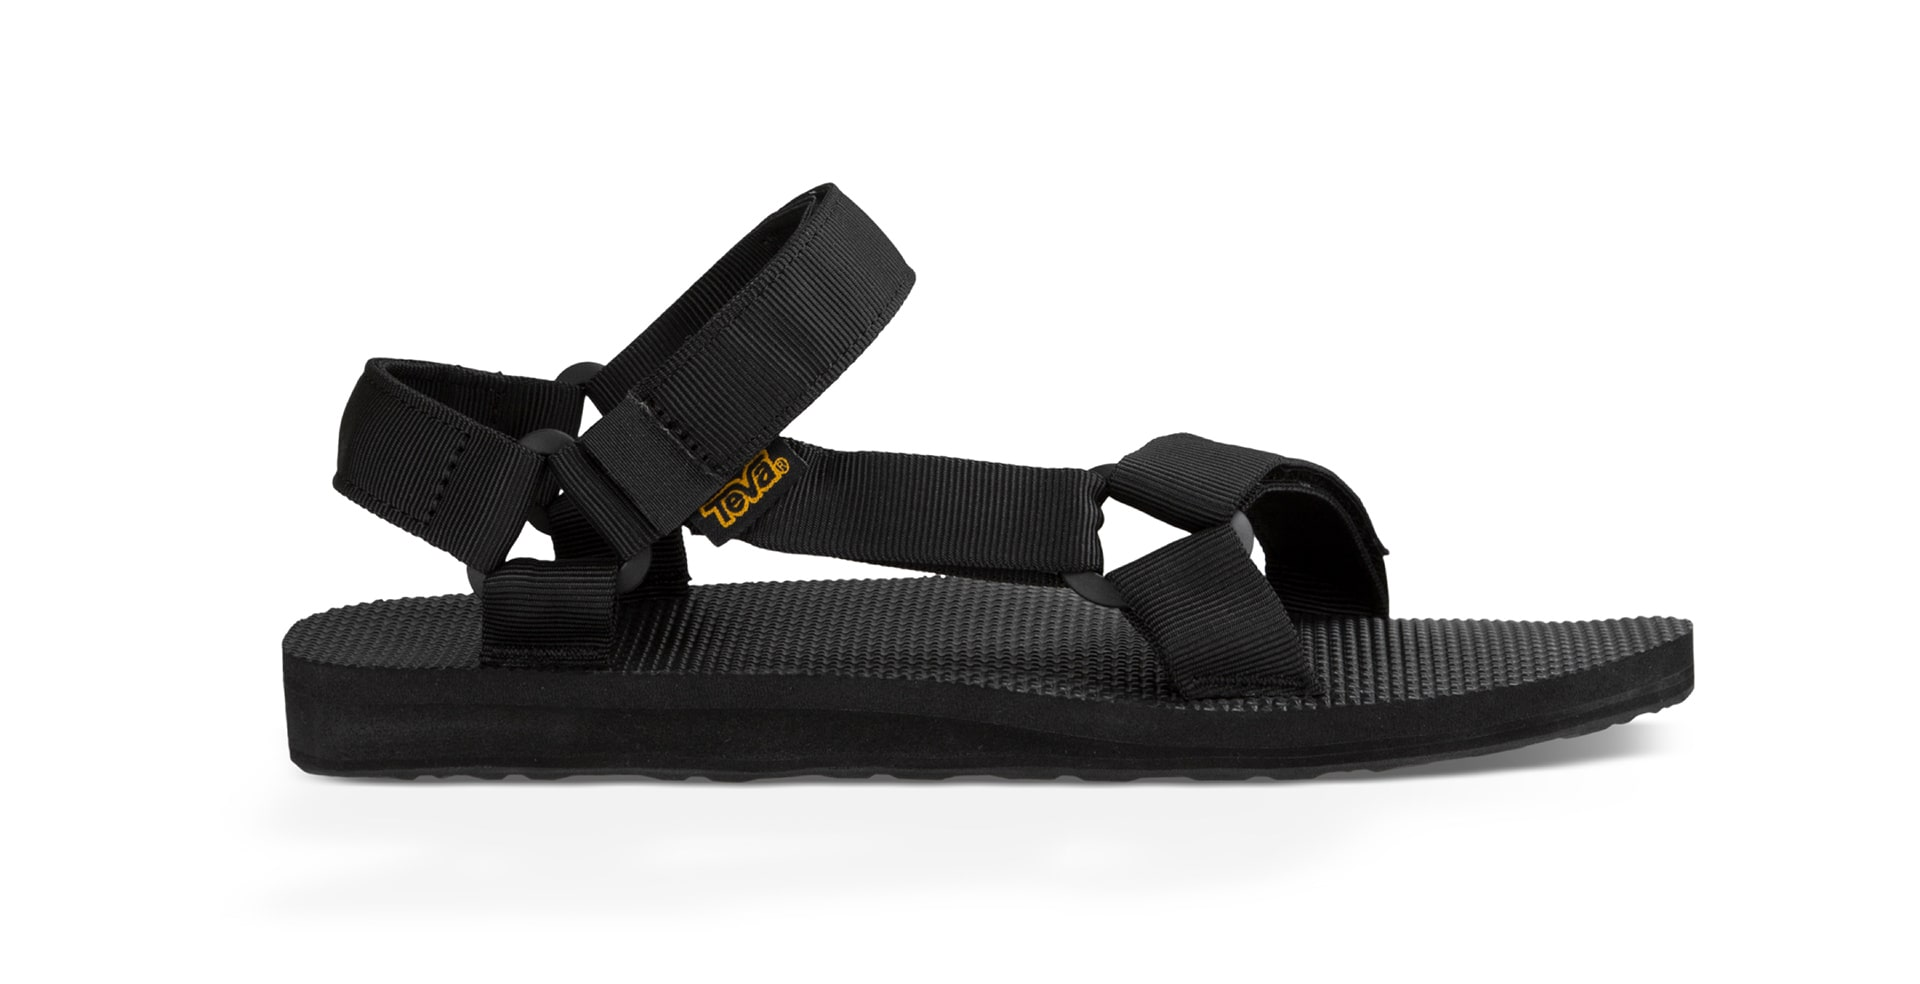 Classic black Teva sandal on white background.